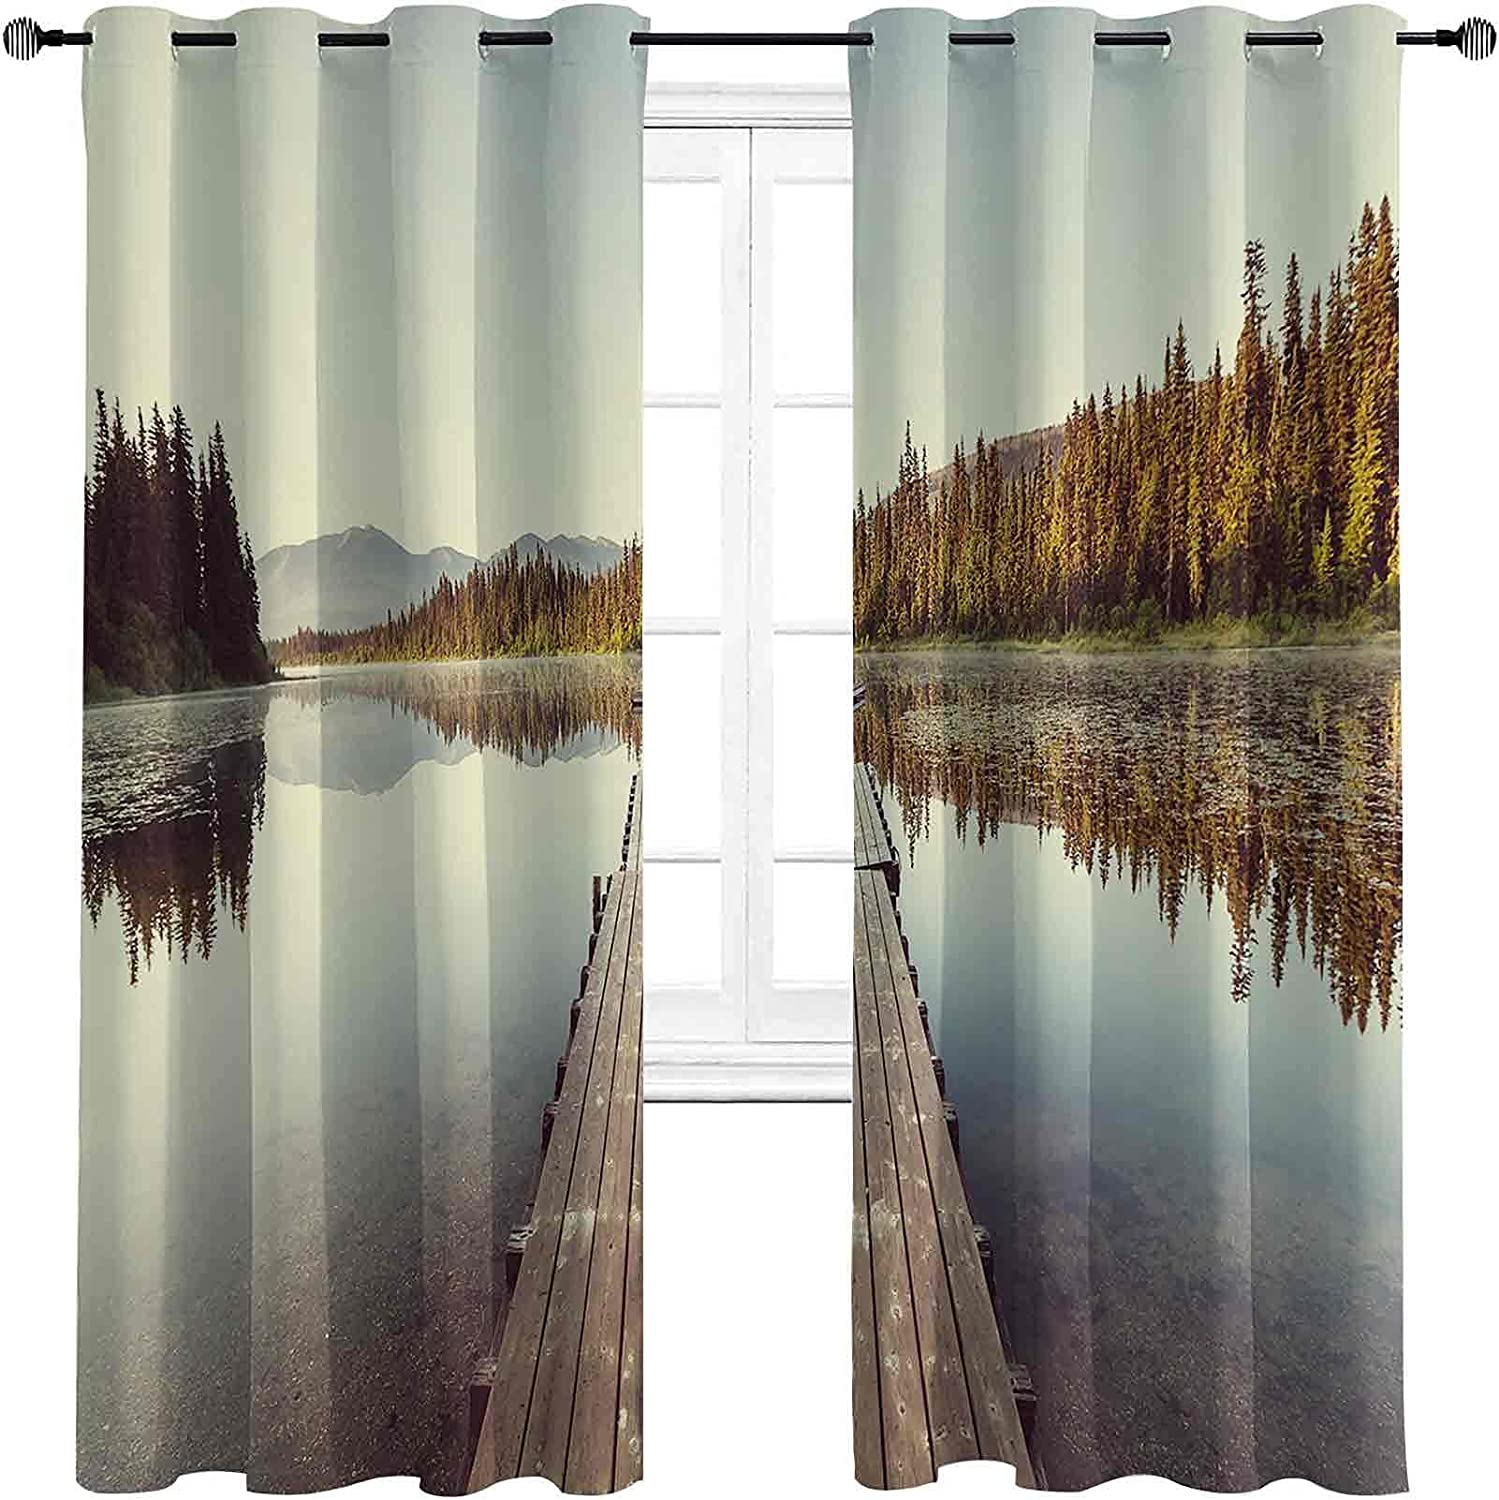 Bargain sale Fall The Living Room has Wooden Blackout Max 71% OFF Curtains Powerful Pier